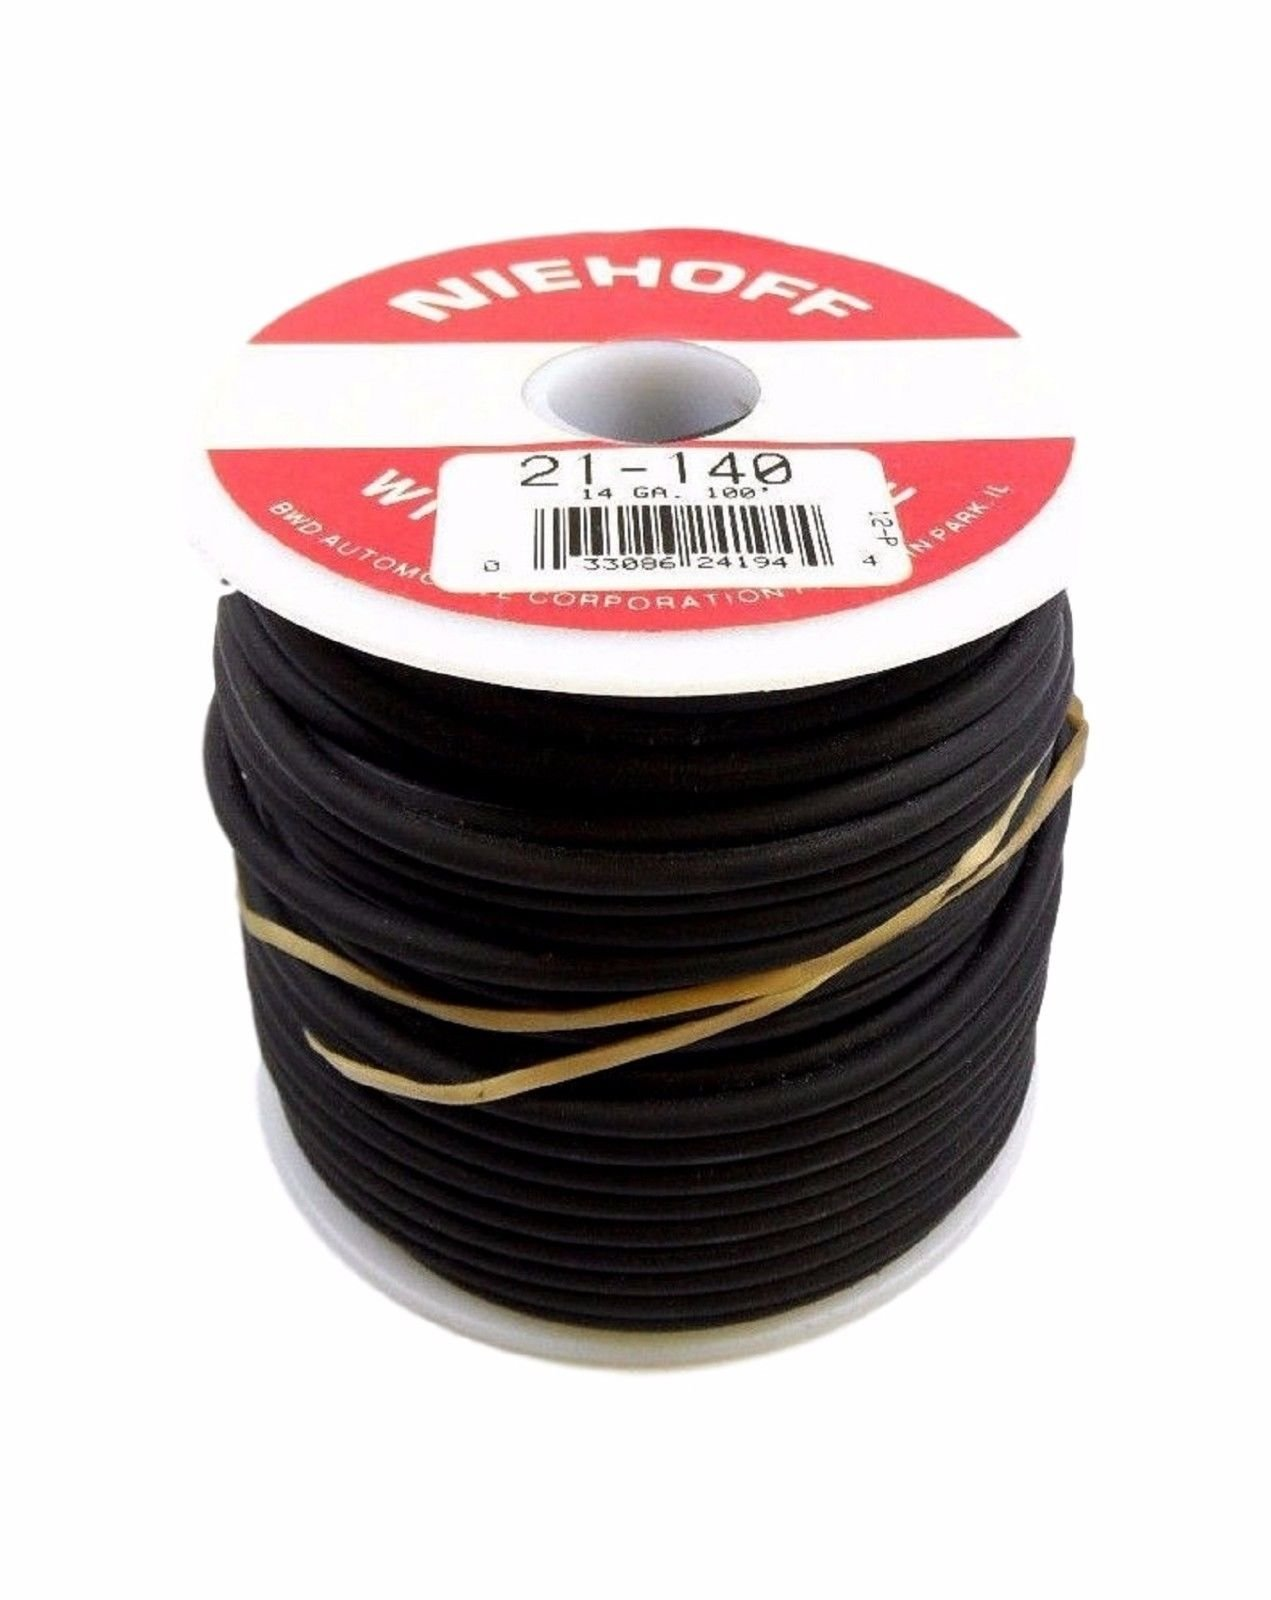 Niehoff 21-140 BWD Electrical Wire & Cable 14 GA Gauge 100Ft 100' Quality Wiring